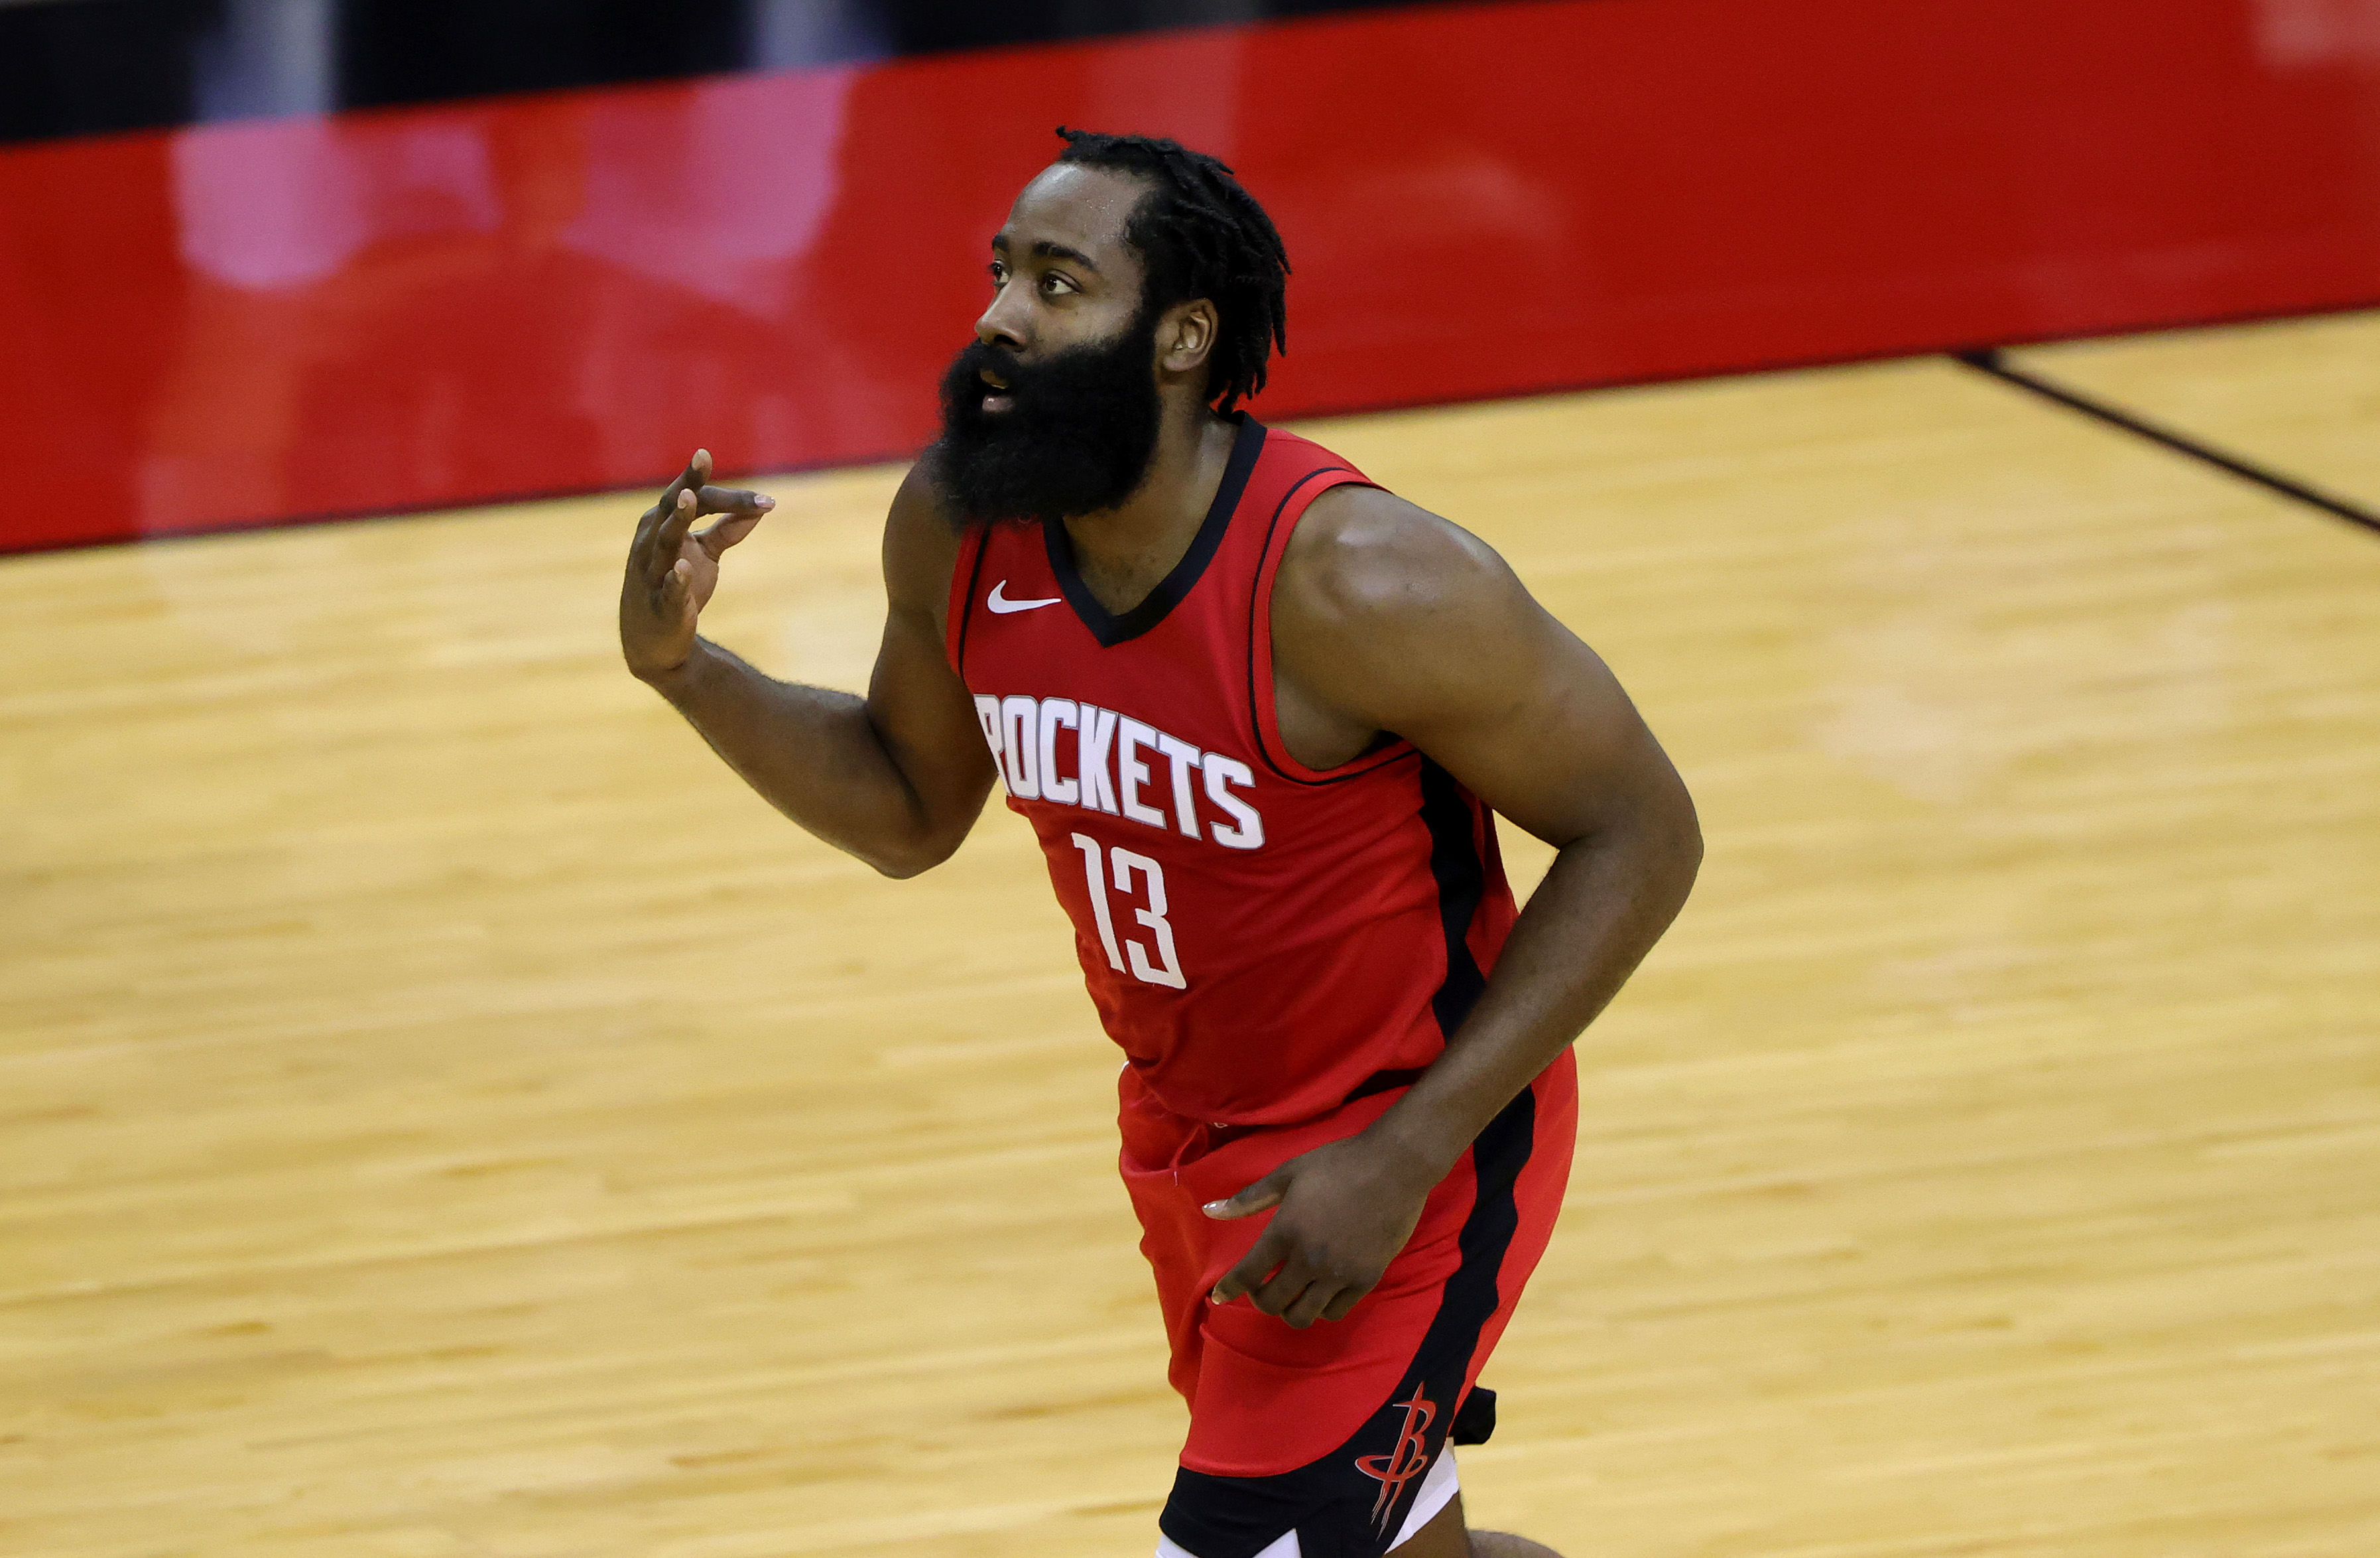 Jan 10, 2021; Houston, Texas, USA; James Harden #13 of the Houston Rockets reacts to a basket during the first quarter of a game against the Los Angeles Lakers at Toyota Center on January 10, 2021 in Houston, Texas.